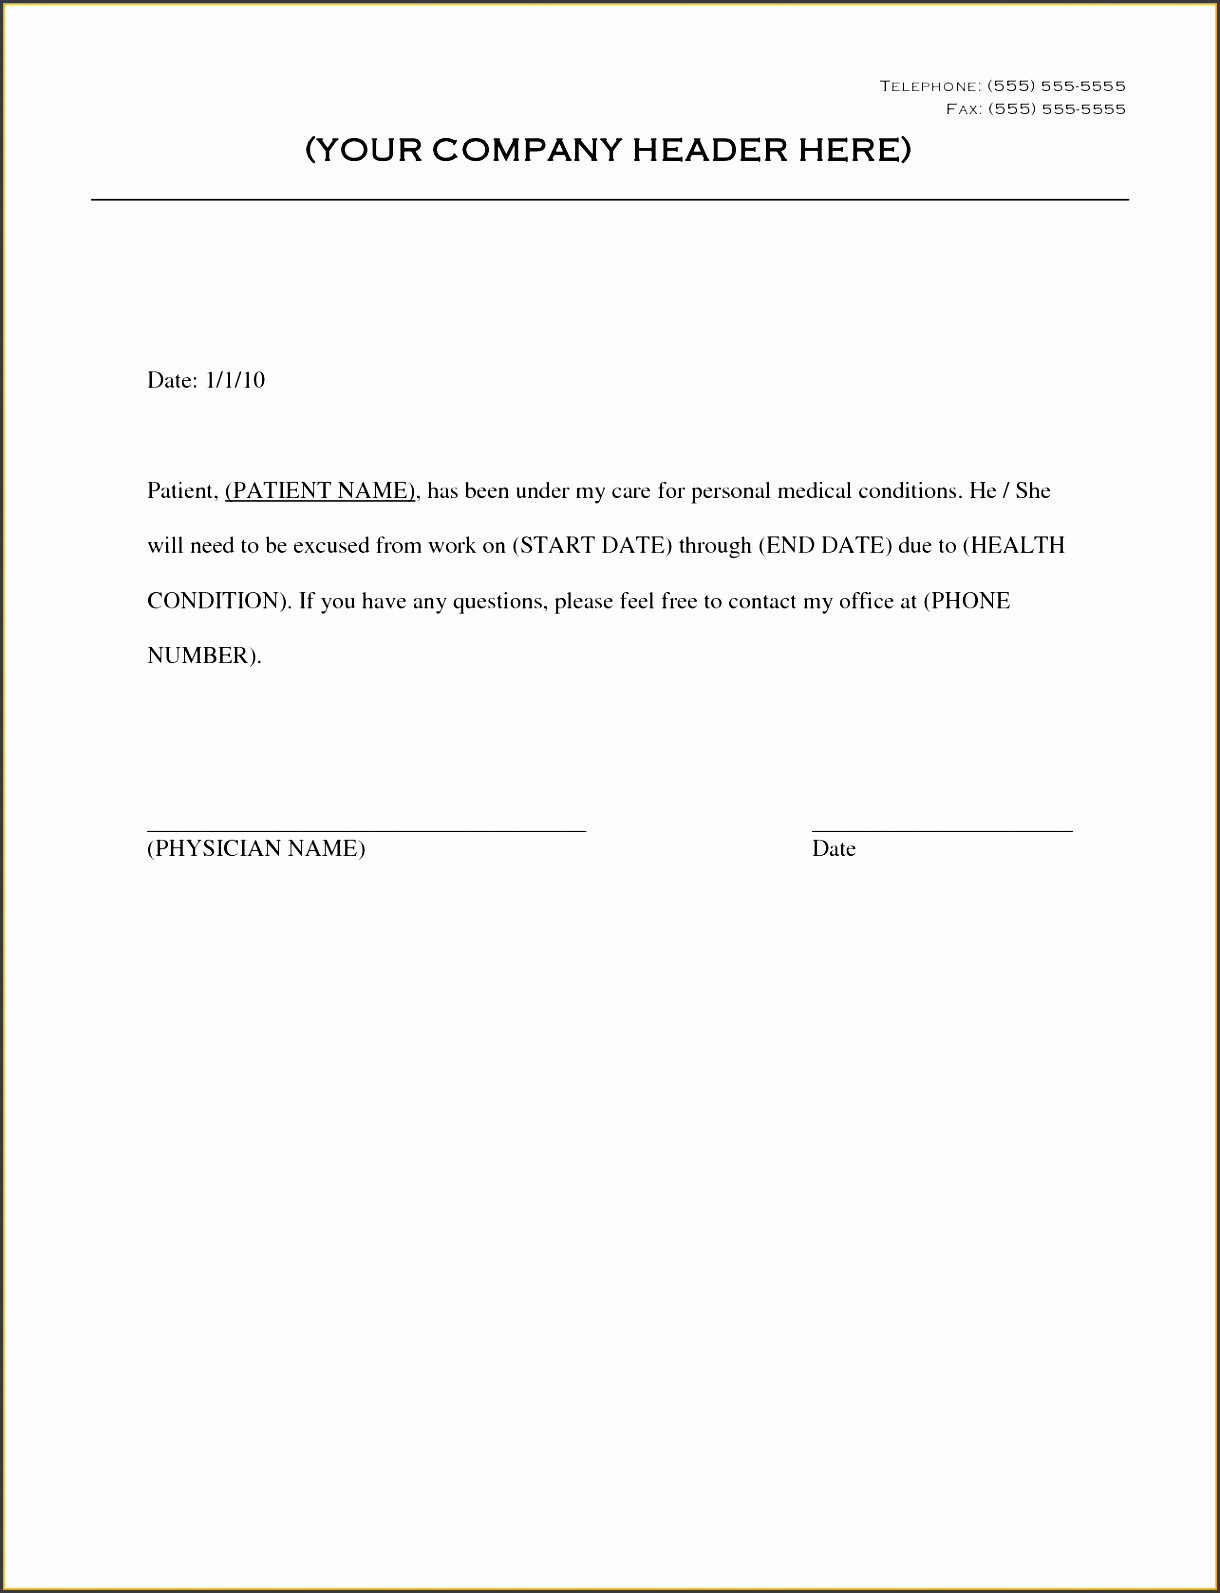 Return to Work Note Template Inspirational 9 Doctor Note Template for Business Sampletemplatess